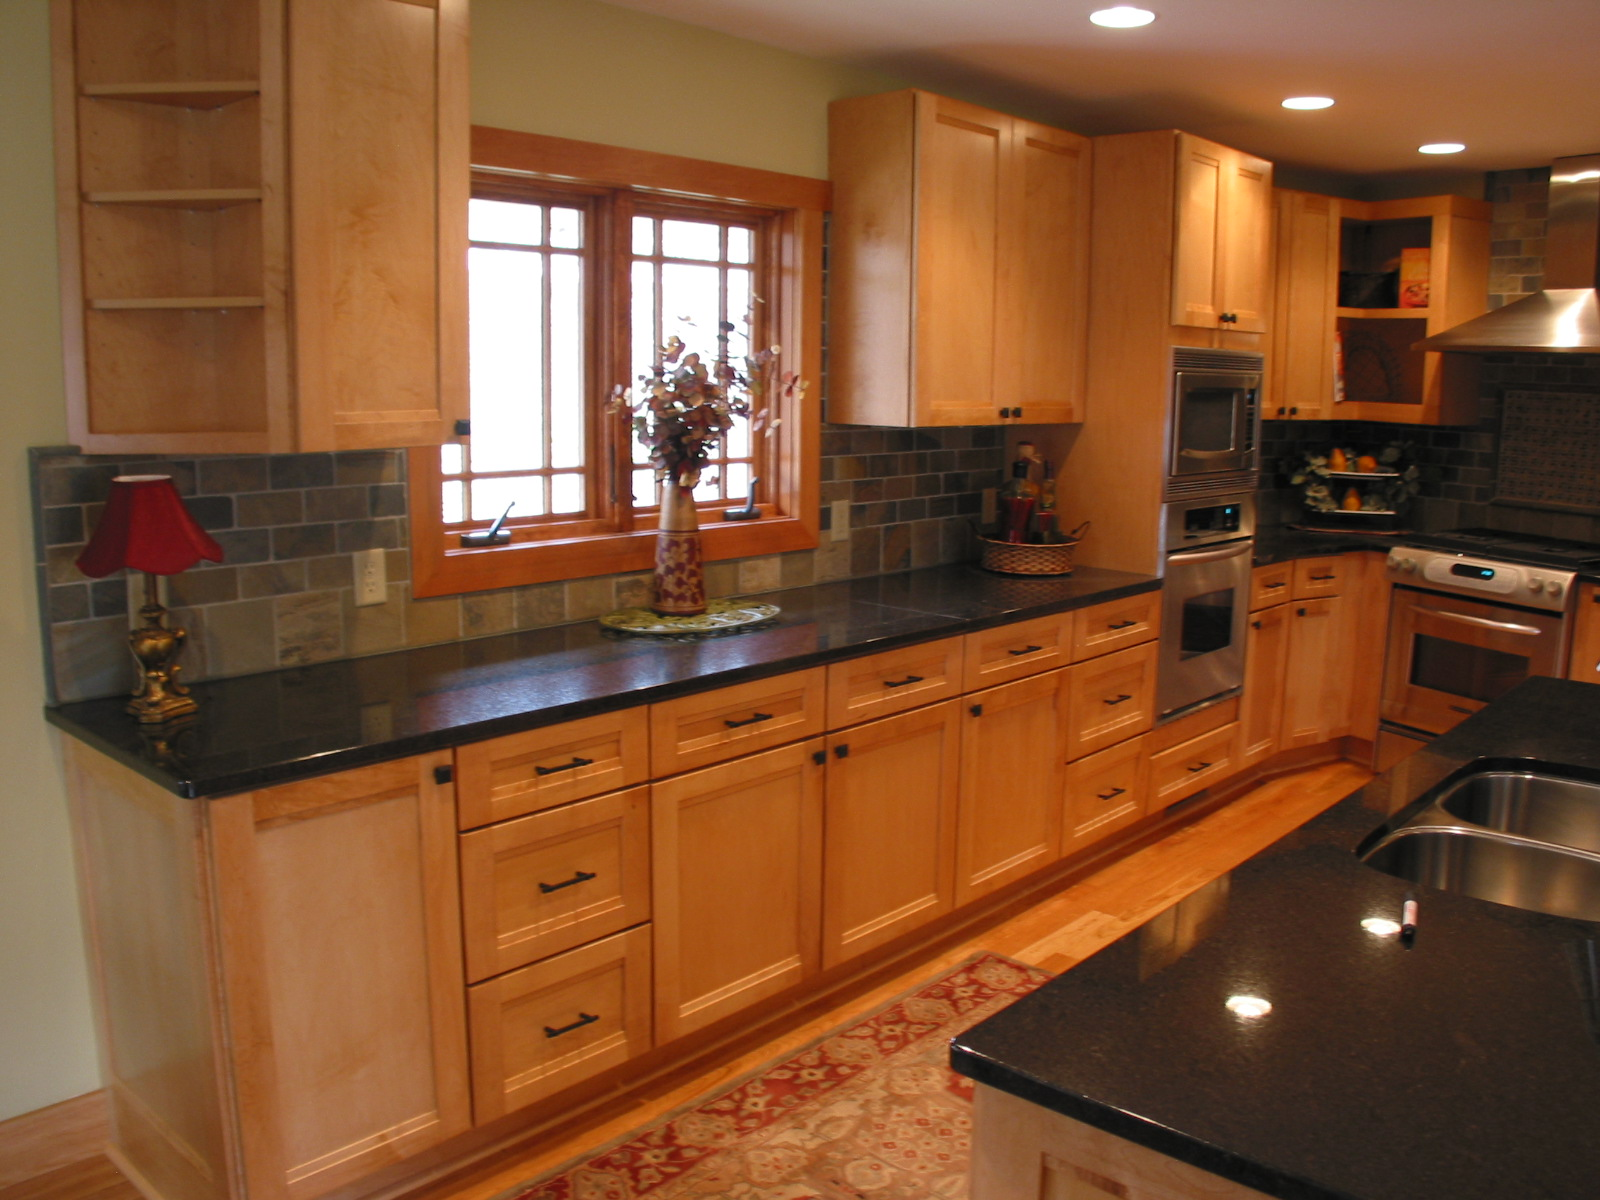 Whole-Builders-Kitchen-Remodel-MtkaM 09 8840